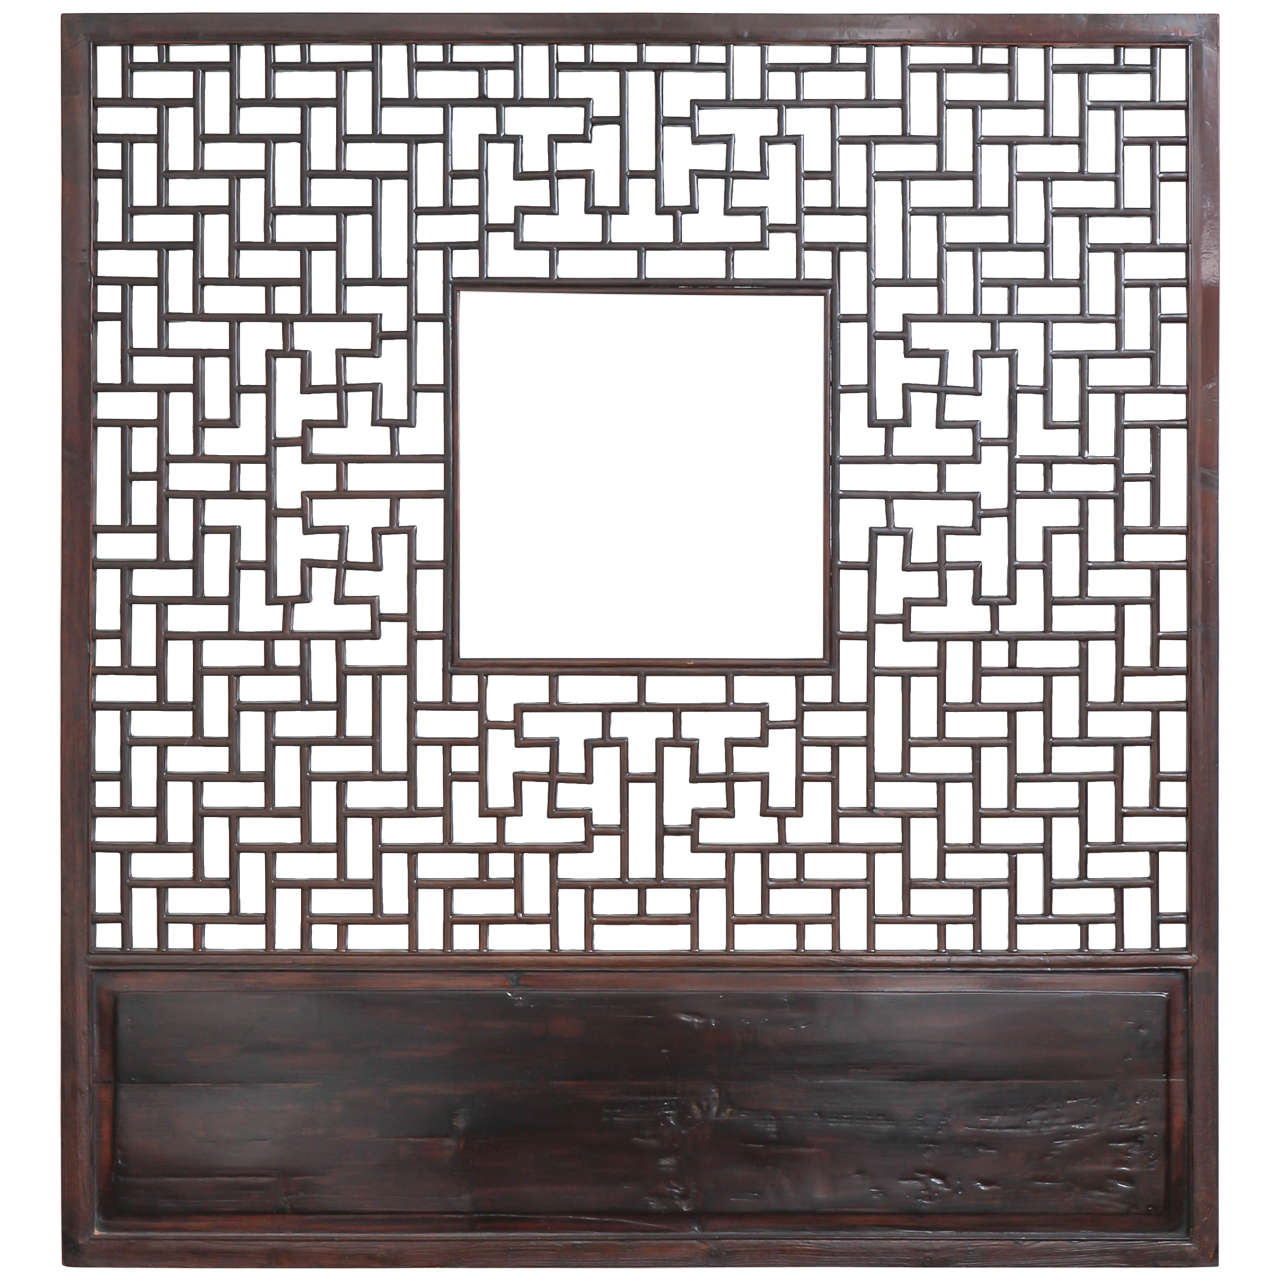 Lattice Screen Panel from China, Late 19th Century at 1stdibs